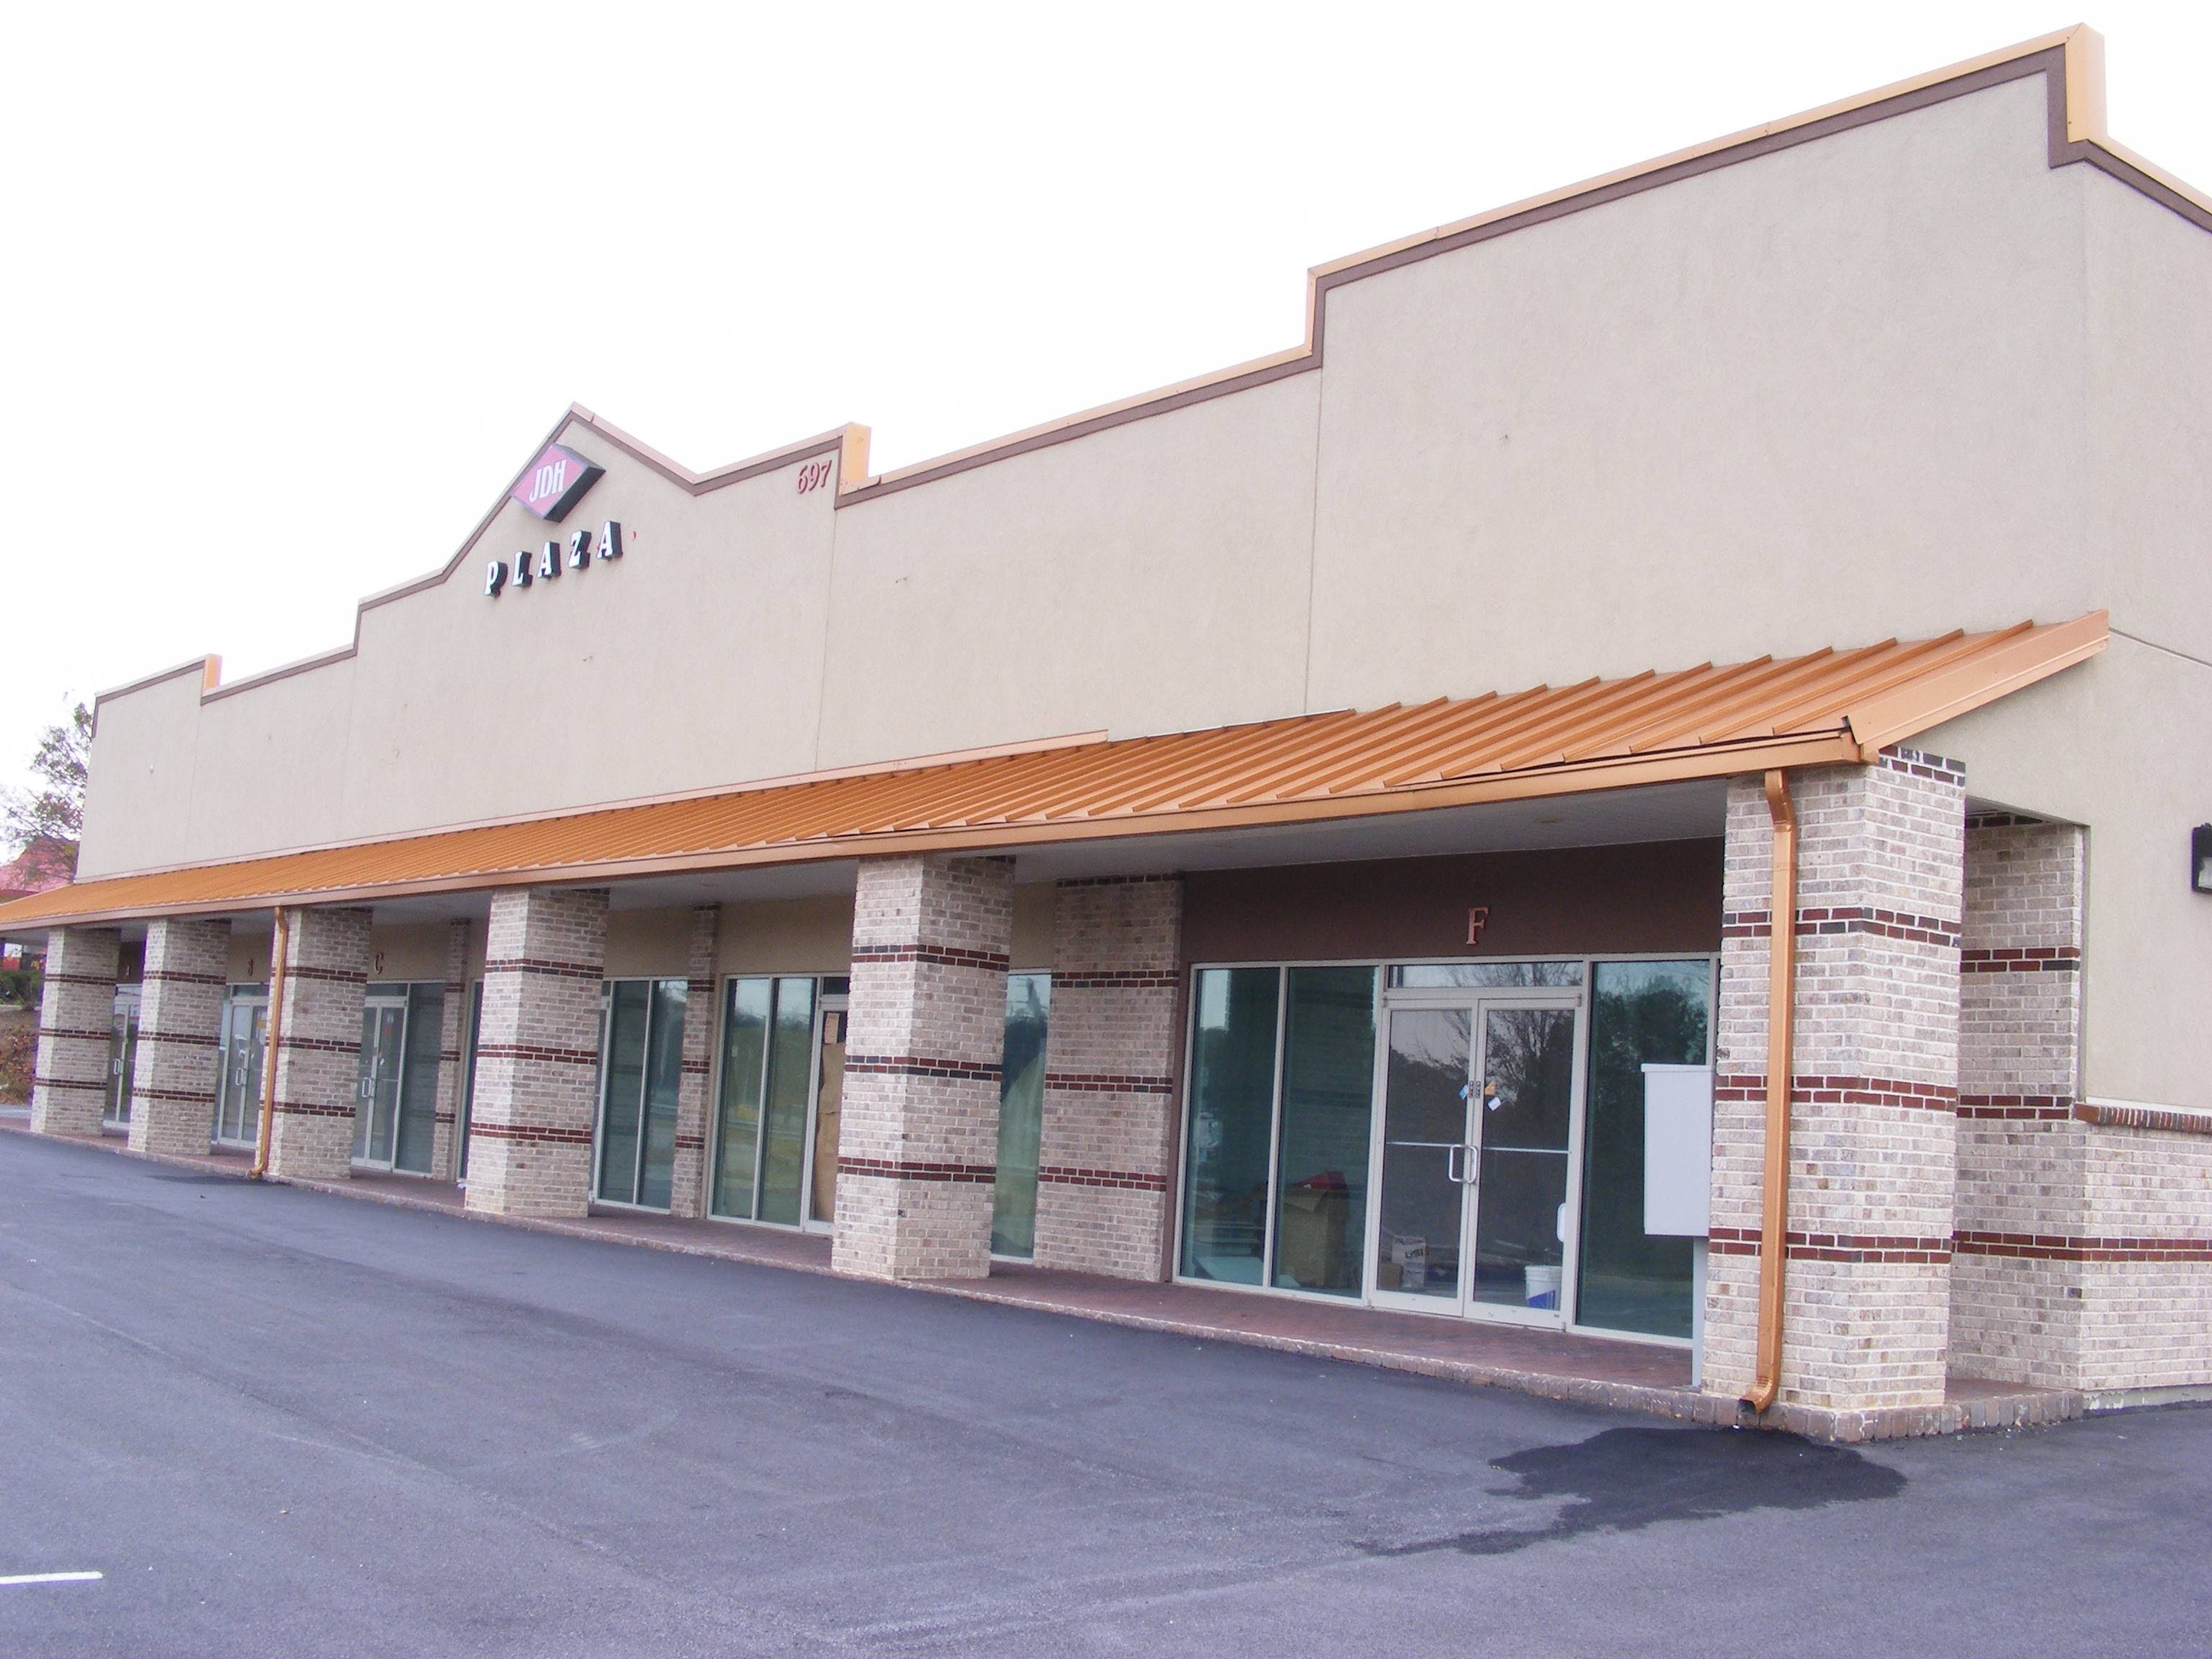 The Building Has Synthetic Stucco With Brick Base And Columns Aluminium Framed Glass Storefronts Strip Center Faces Jonesboro Home Depot